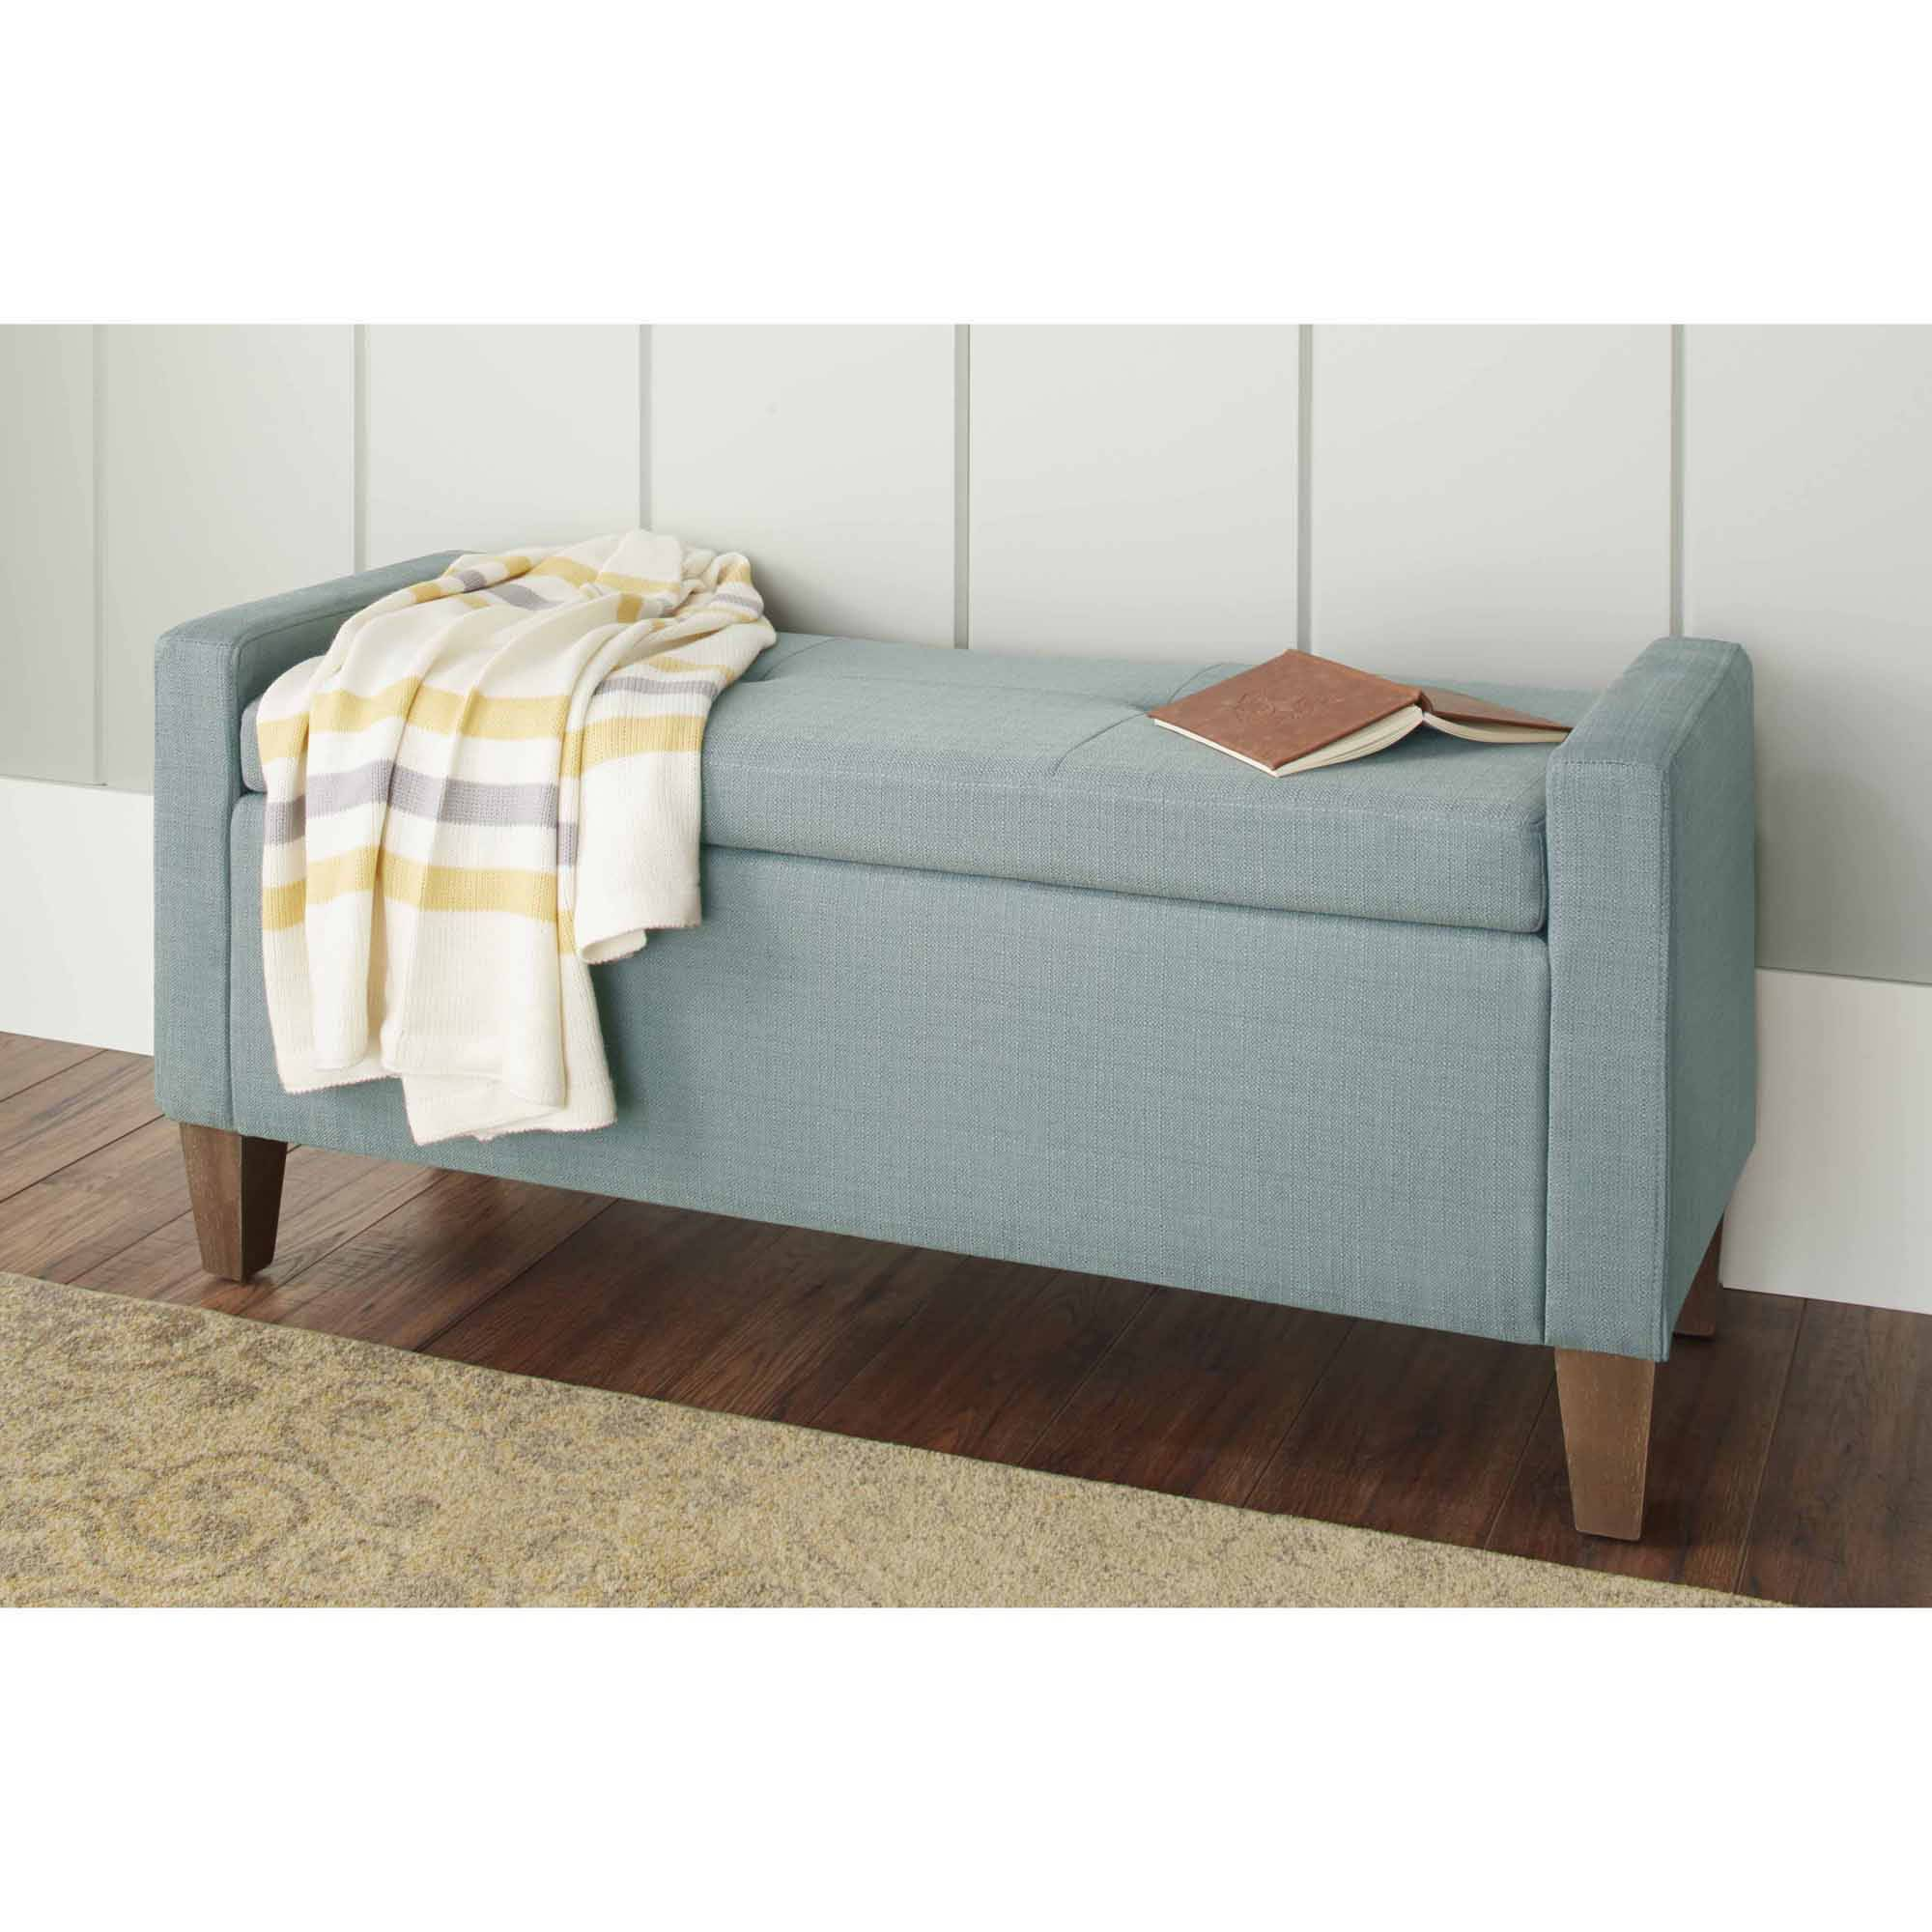 10 Spring Street Streeter Storage Bench, Multiple Colors - Walmart.com